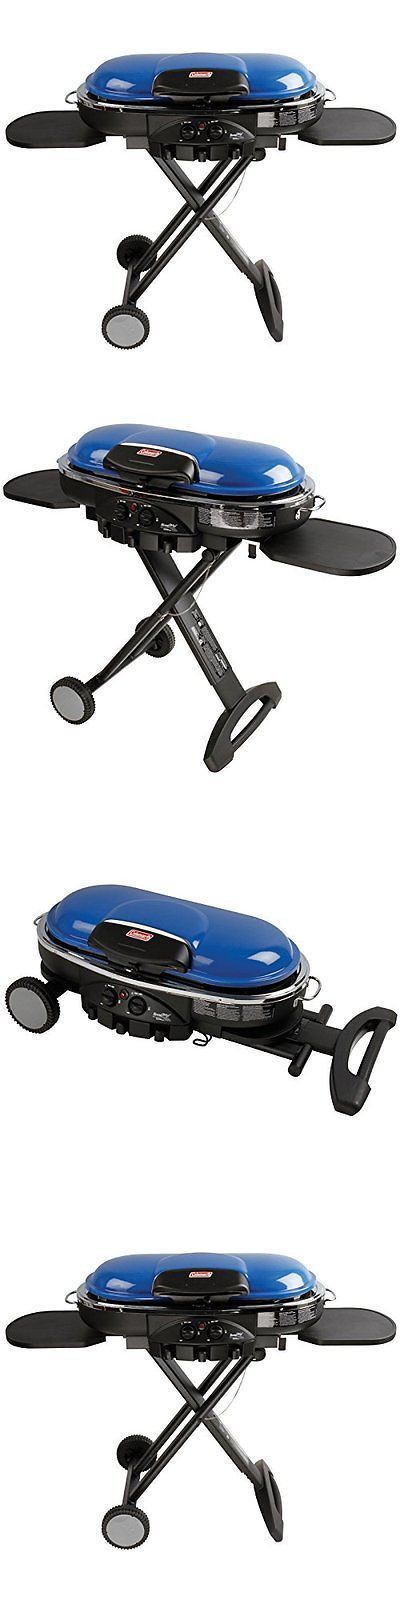 Camping BBQs and Grills 181388: Road Trip Propane Portable Grill Lxe Blue Roadtrip Bbq Camping Outdoor Gas Tailg -> BUY IT NOW ONLY: $184.04 on eBay!